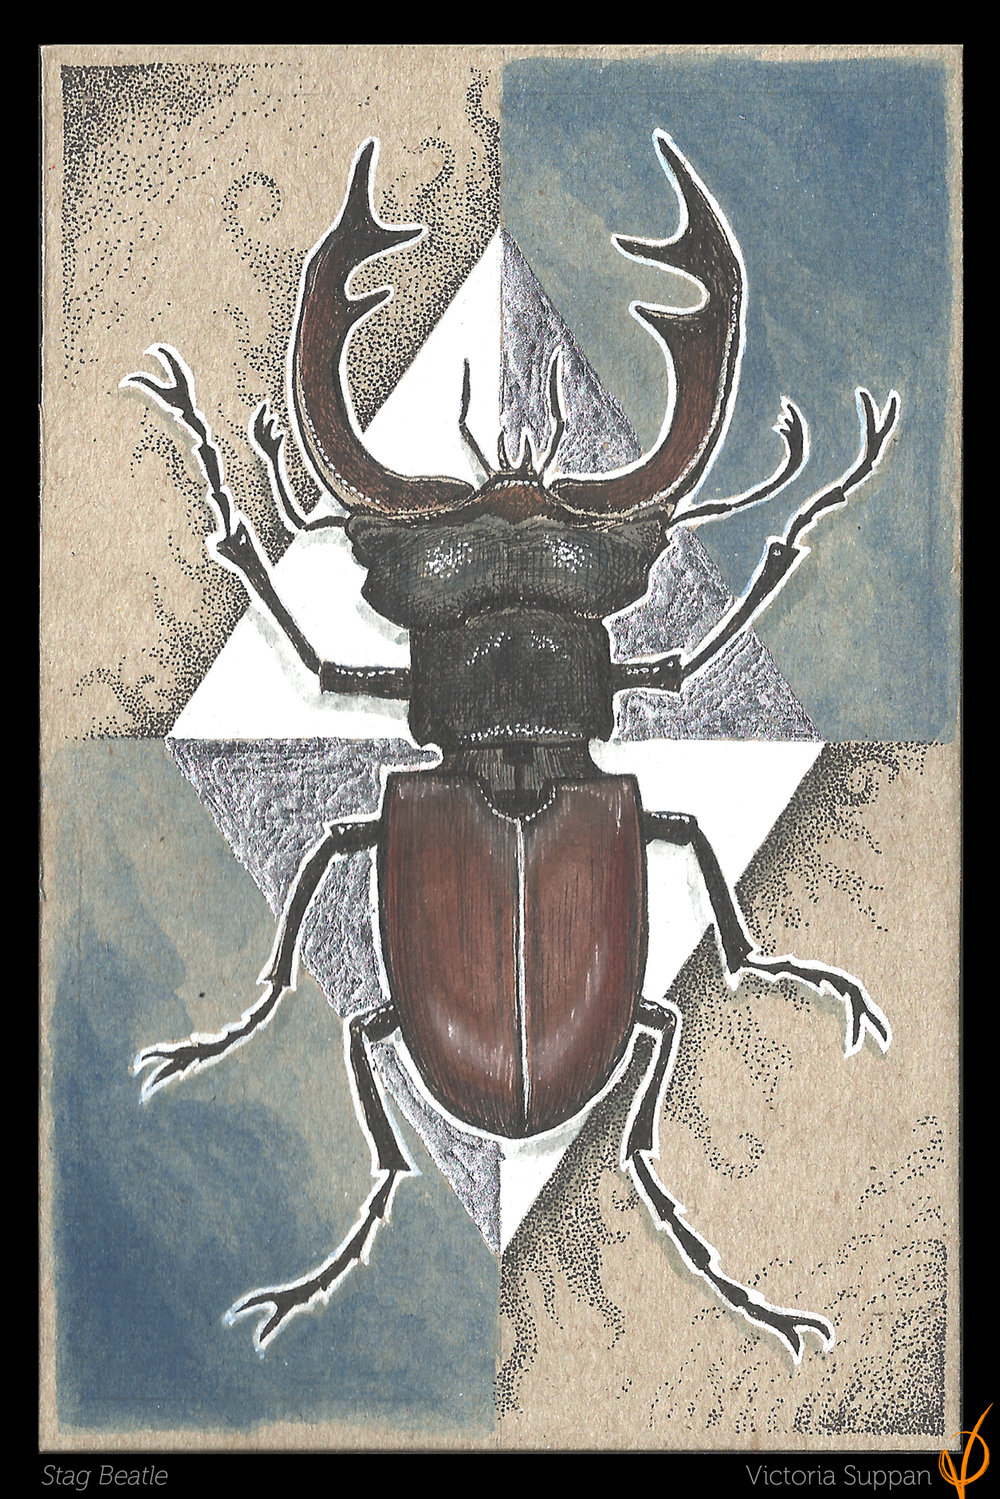 Stag Beatle Ink, watercolor and metal leaf on paper - 2018